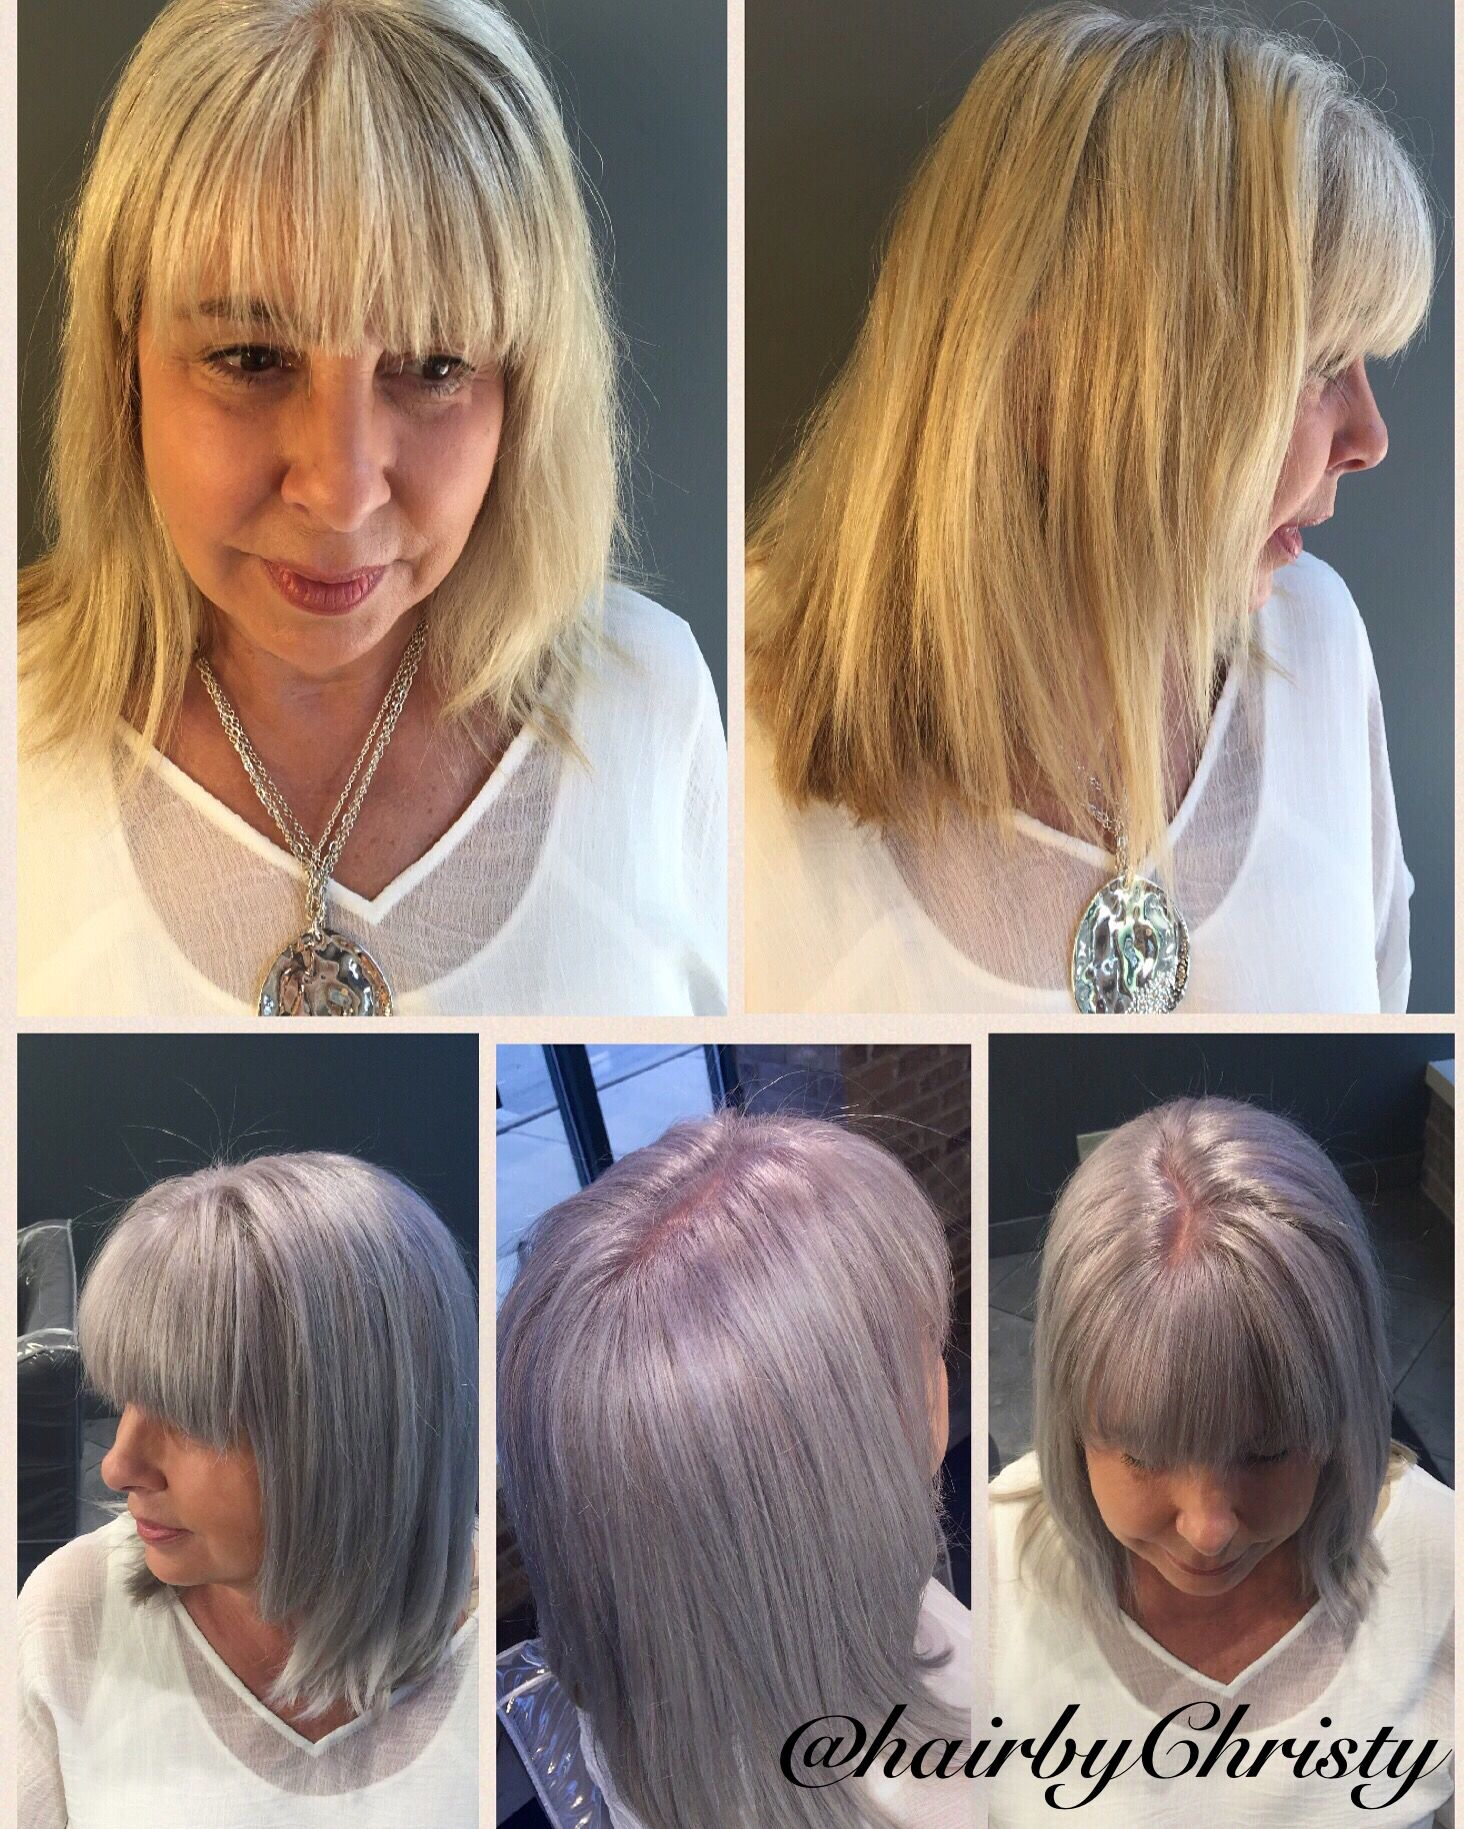 Before And After Going From Grown Out Blonde Hair To Gray Hair Guest Wanted To Make Life Easier Ha Aveda Hair Color Grown Out Blonde Hair Natural Gray Hair